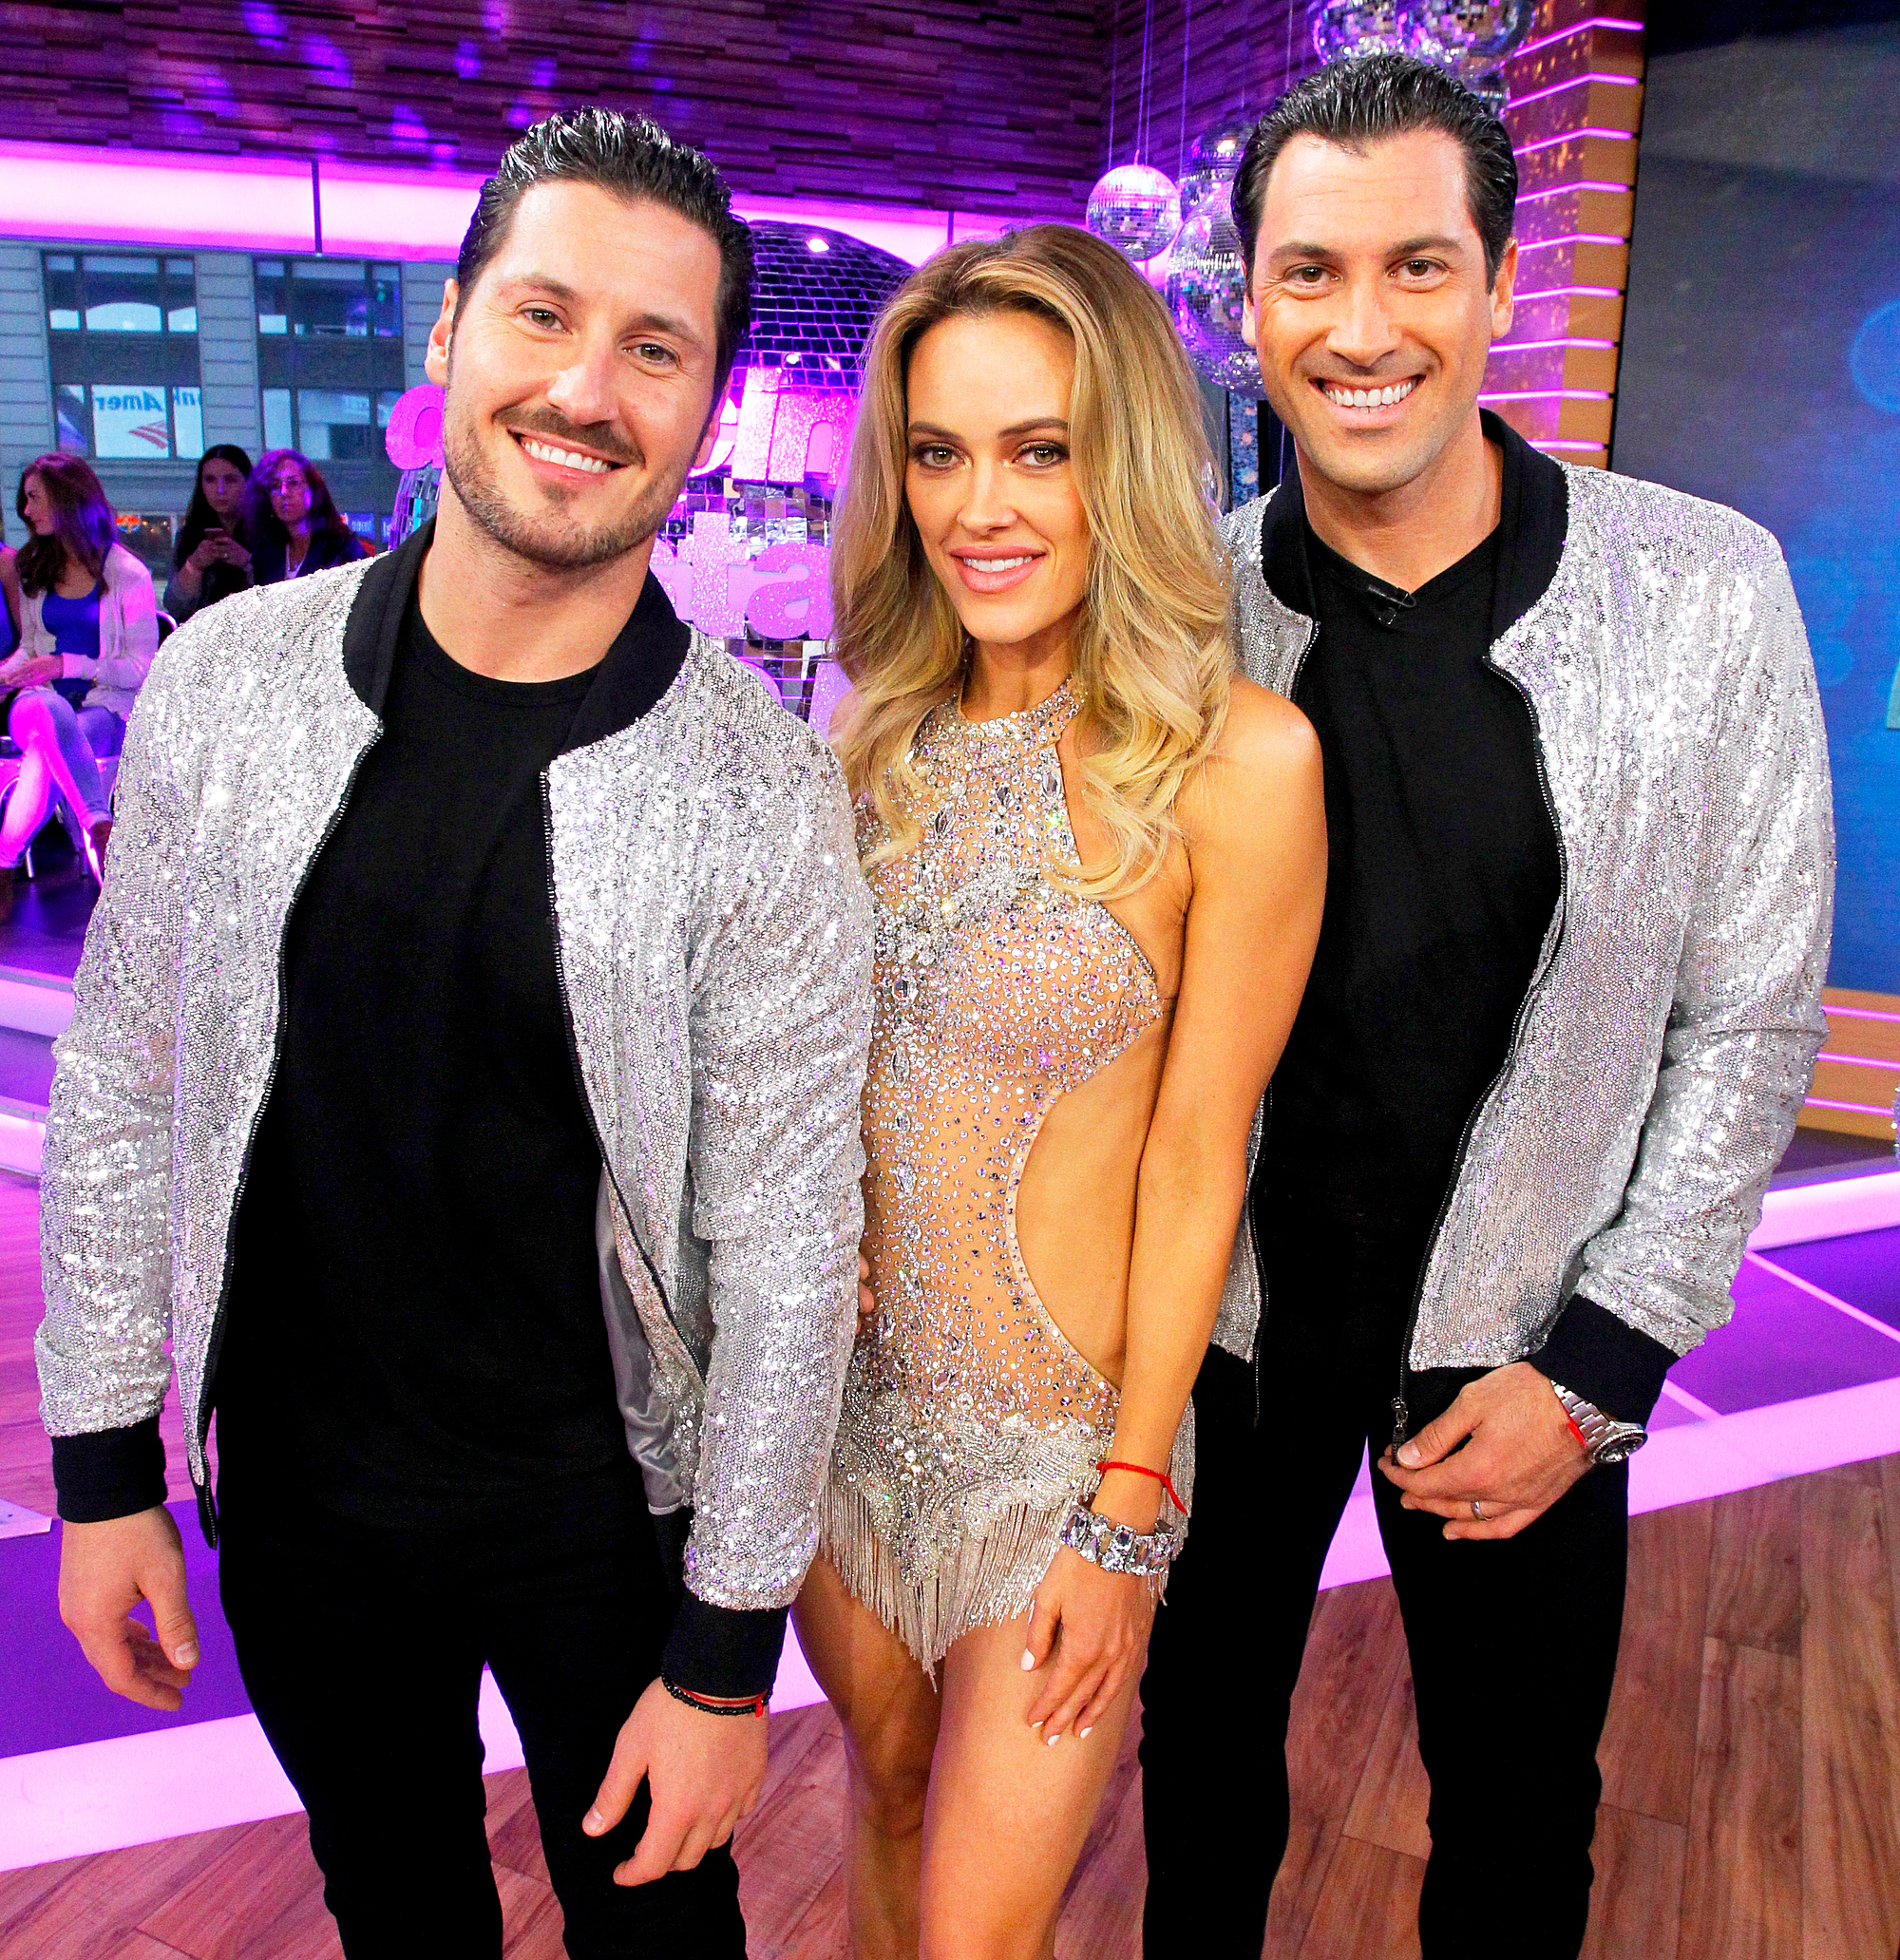 Hookup Dancing Stars Murgatroyd With Peta The